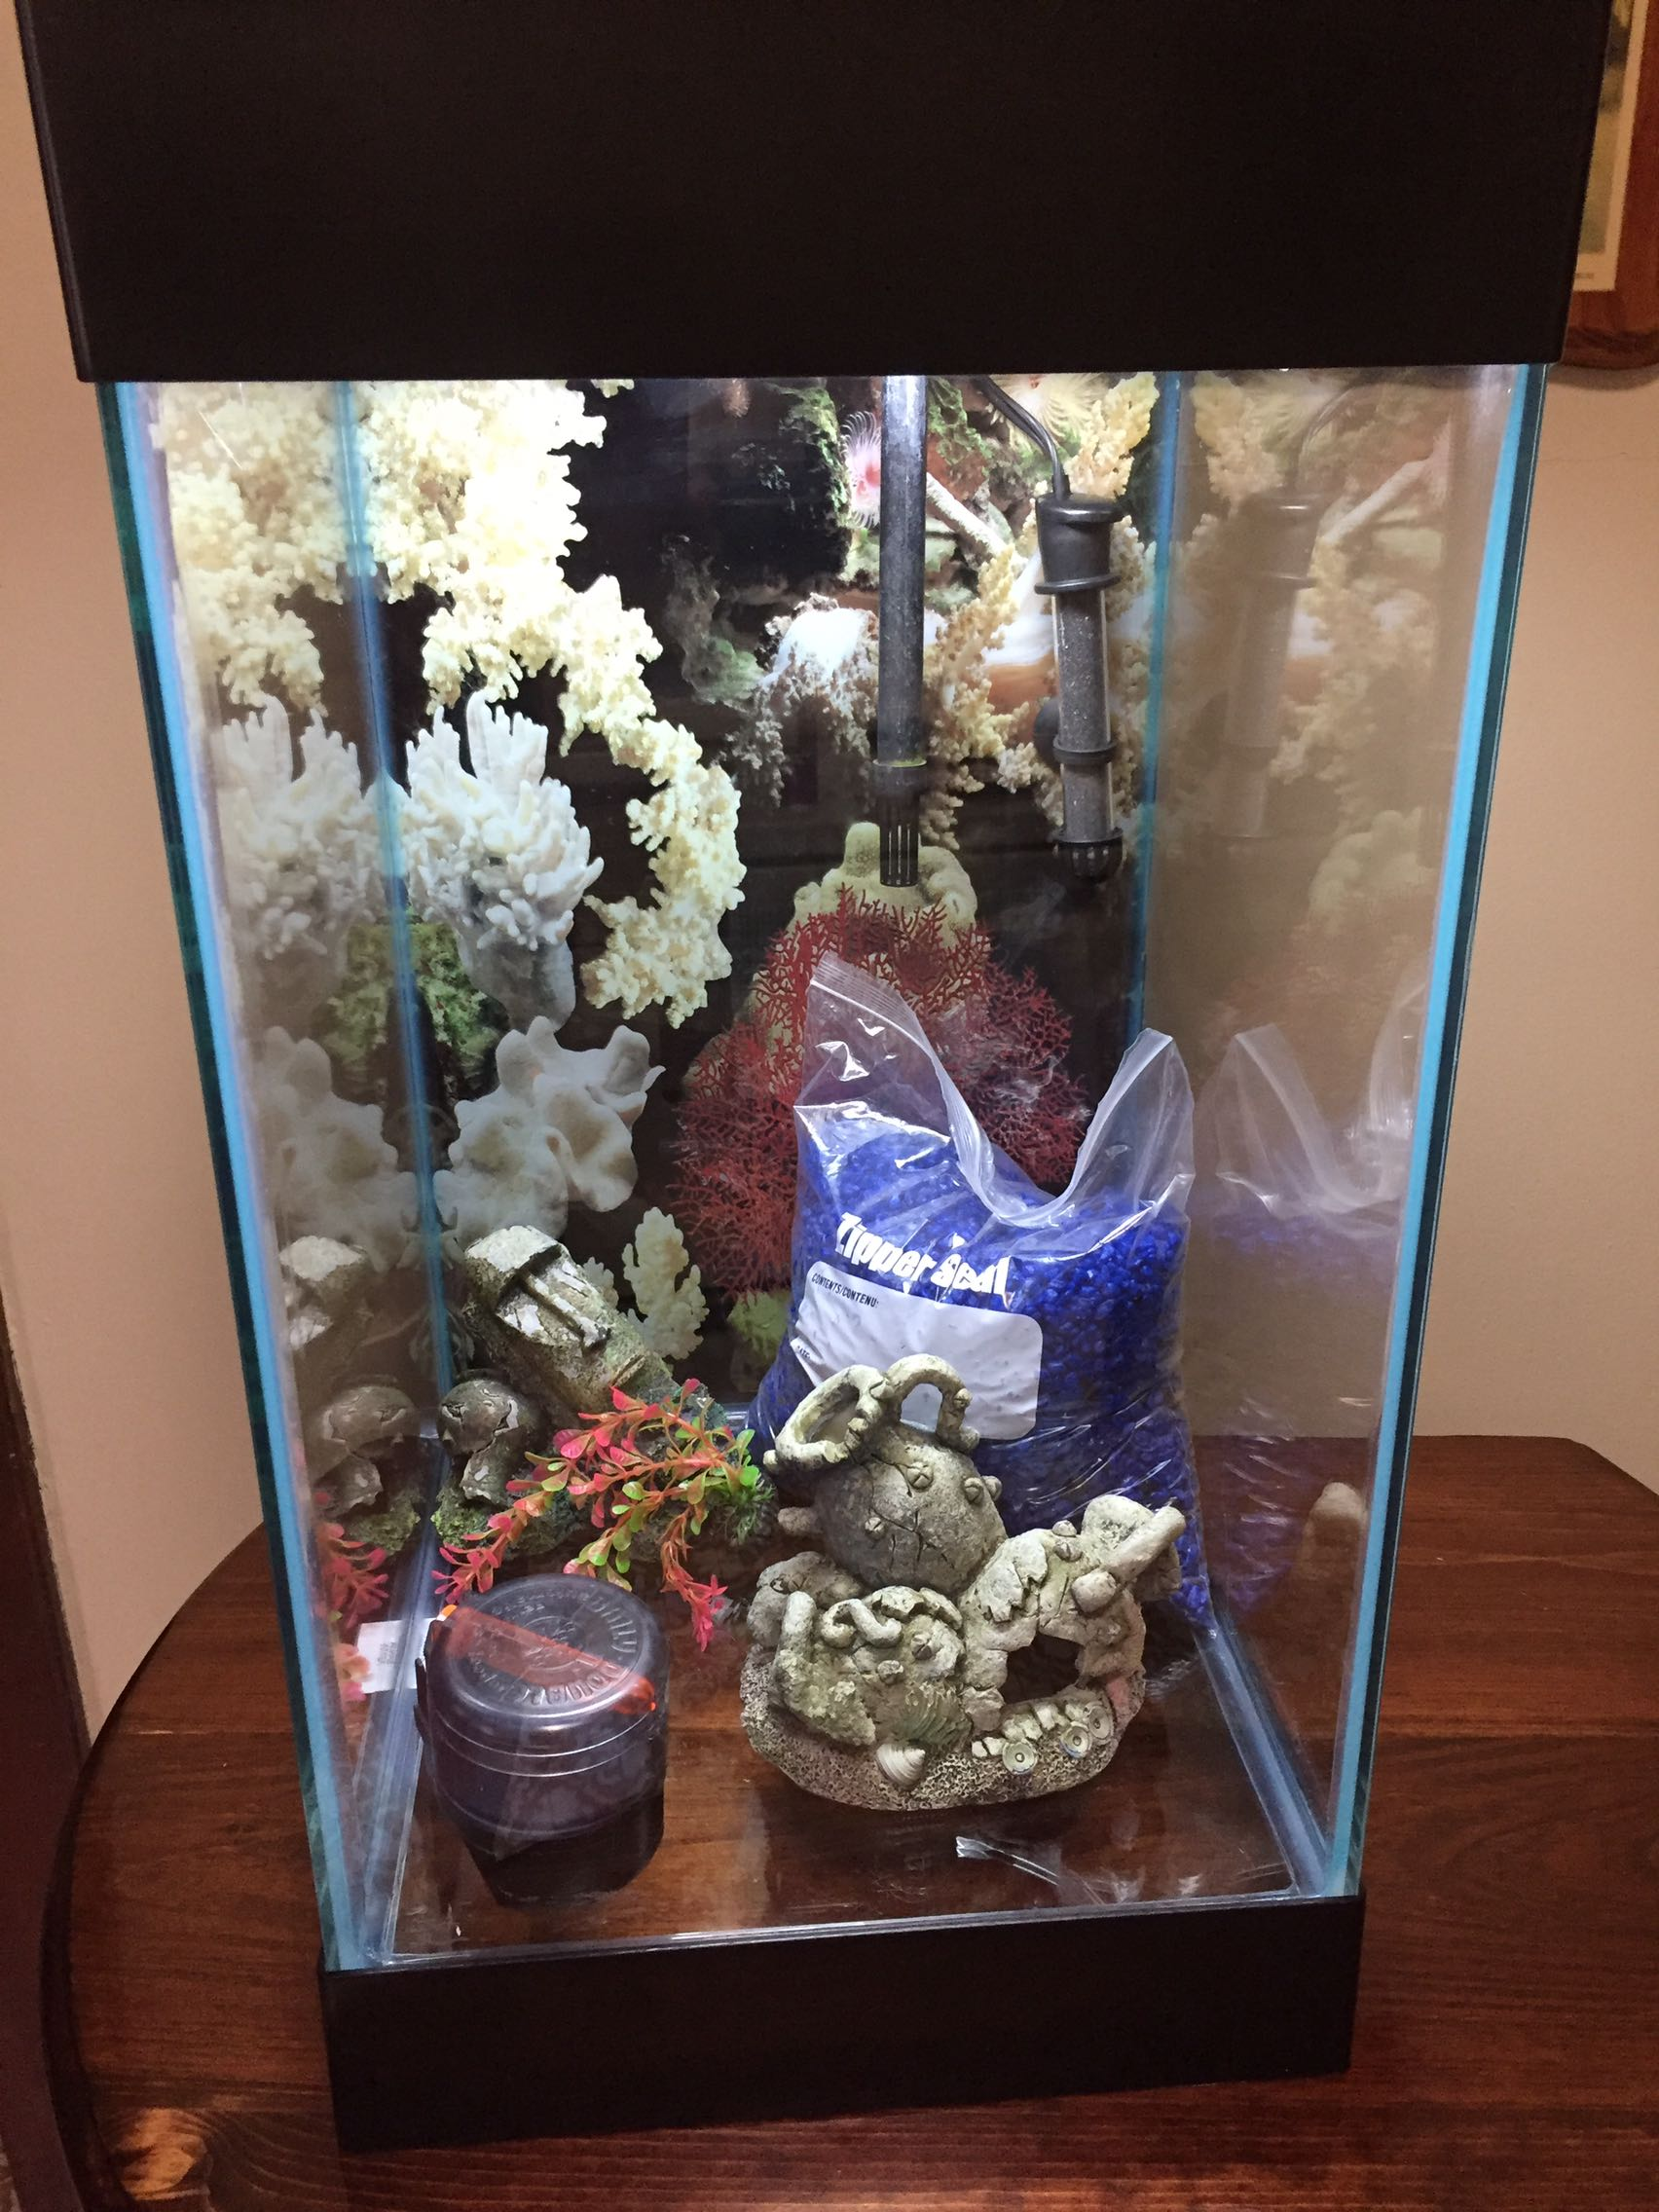 15 Gallon Column Fish Tank